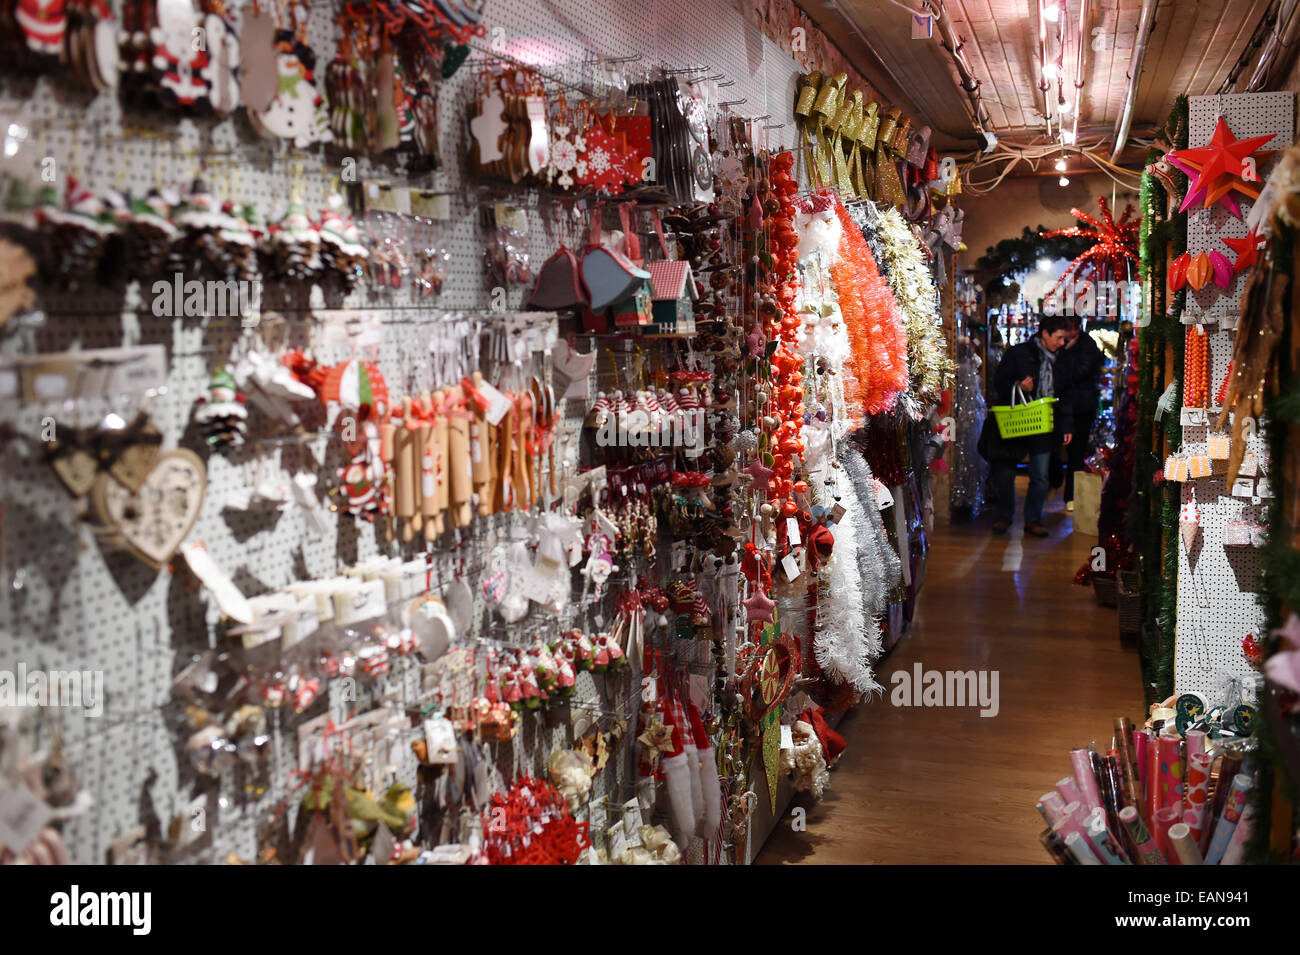 17th Nov, 2014 Christmas Ornaments In The Sale's Room At